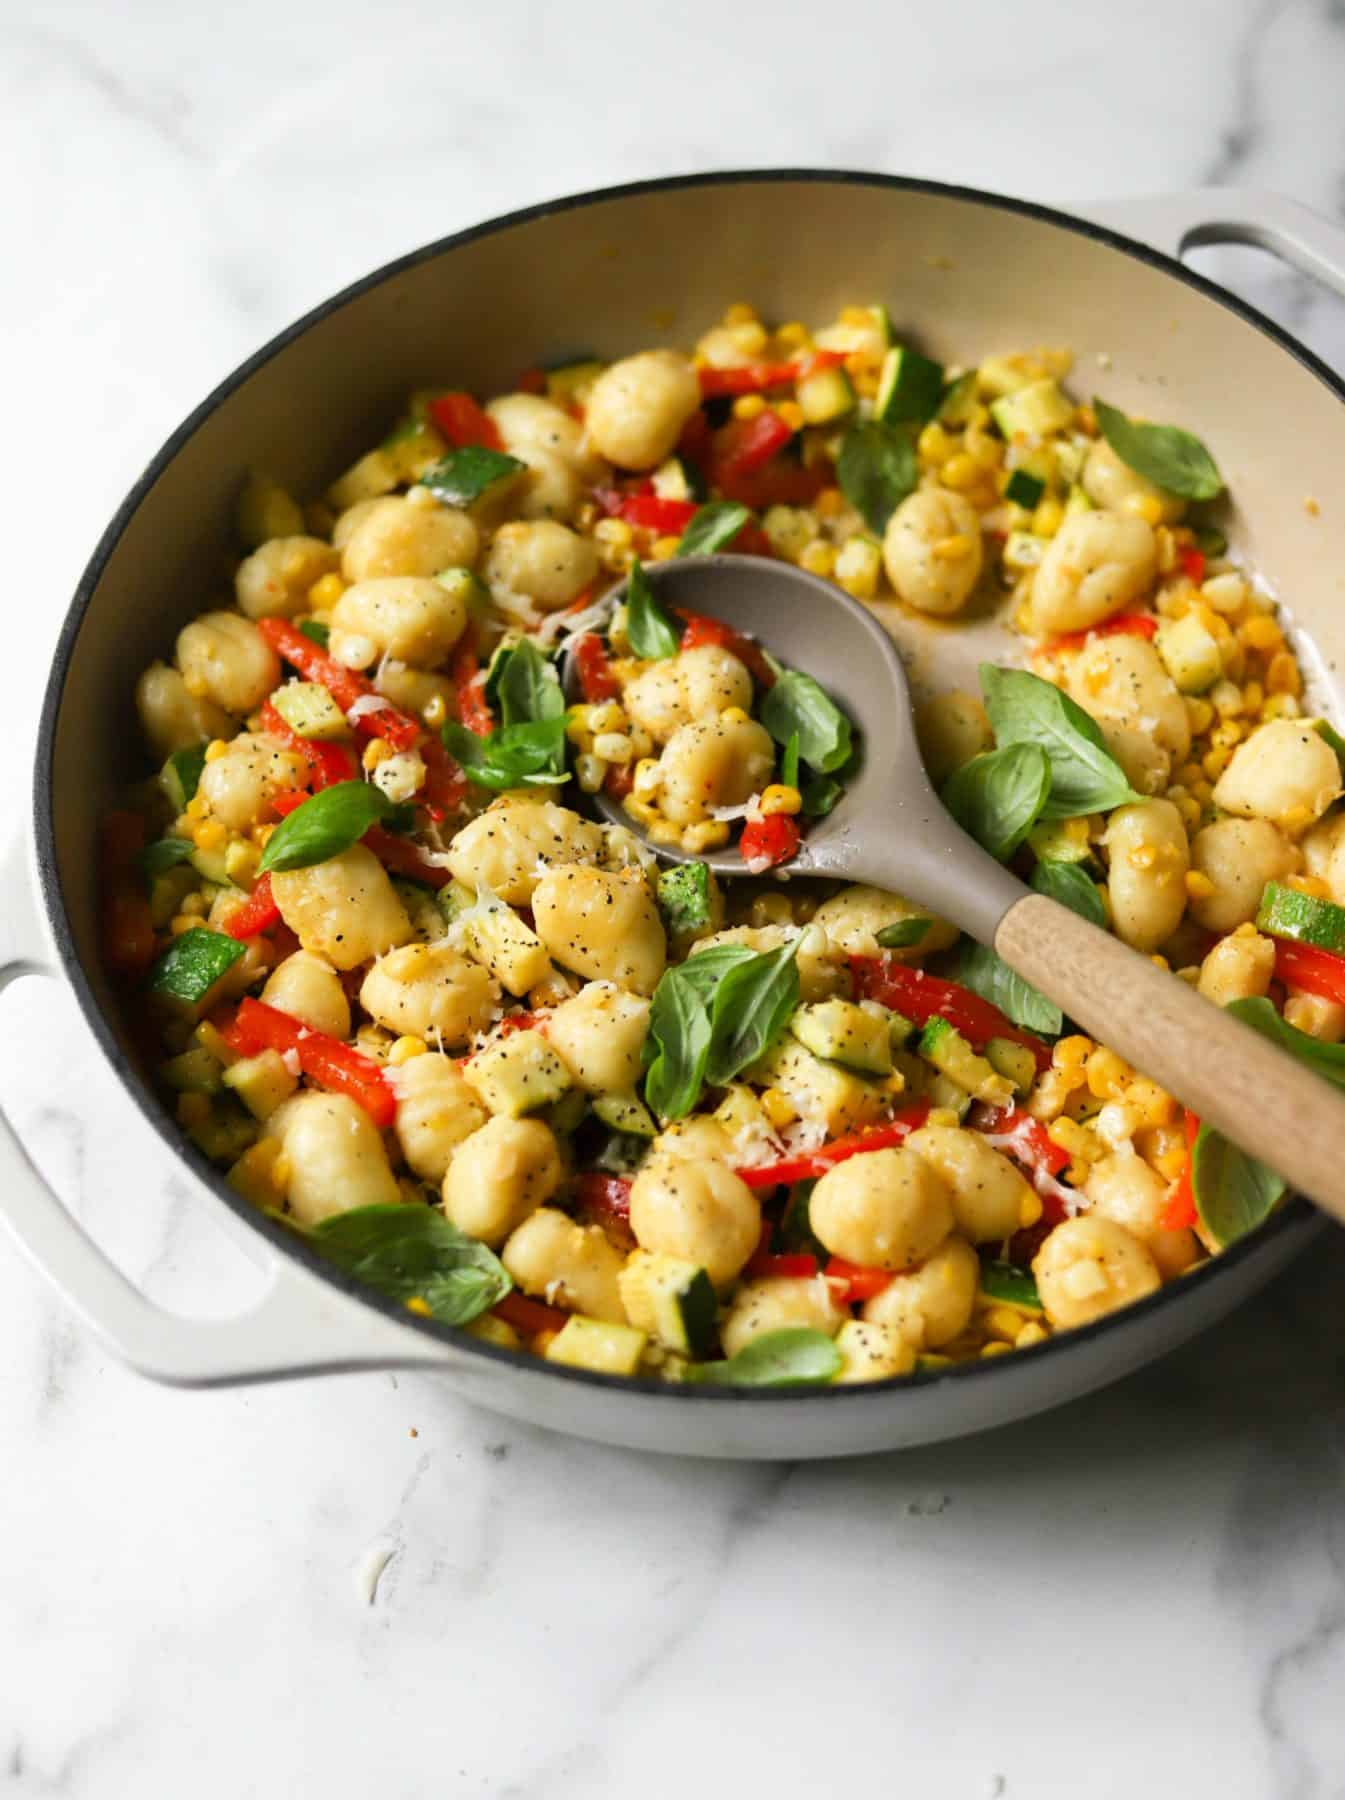 Healthy summer recipe for gnocchi skillet in a white dish